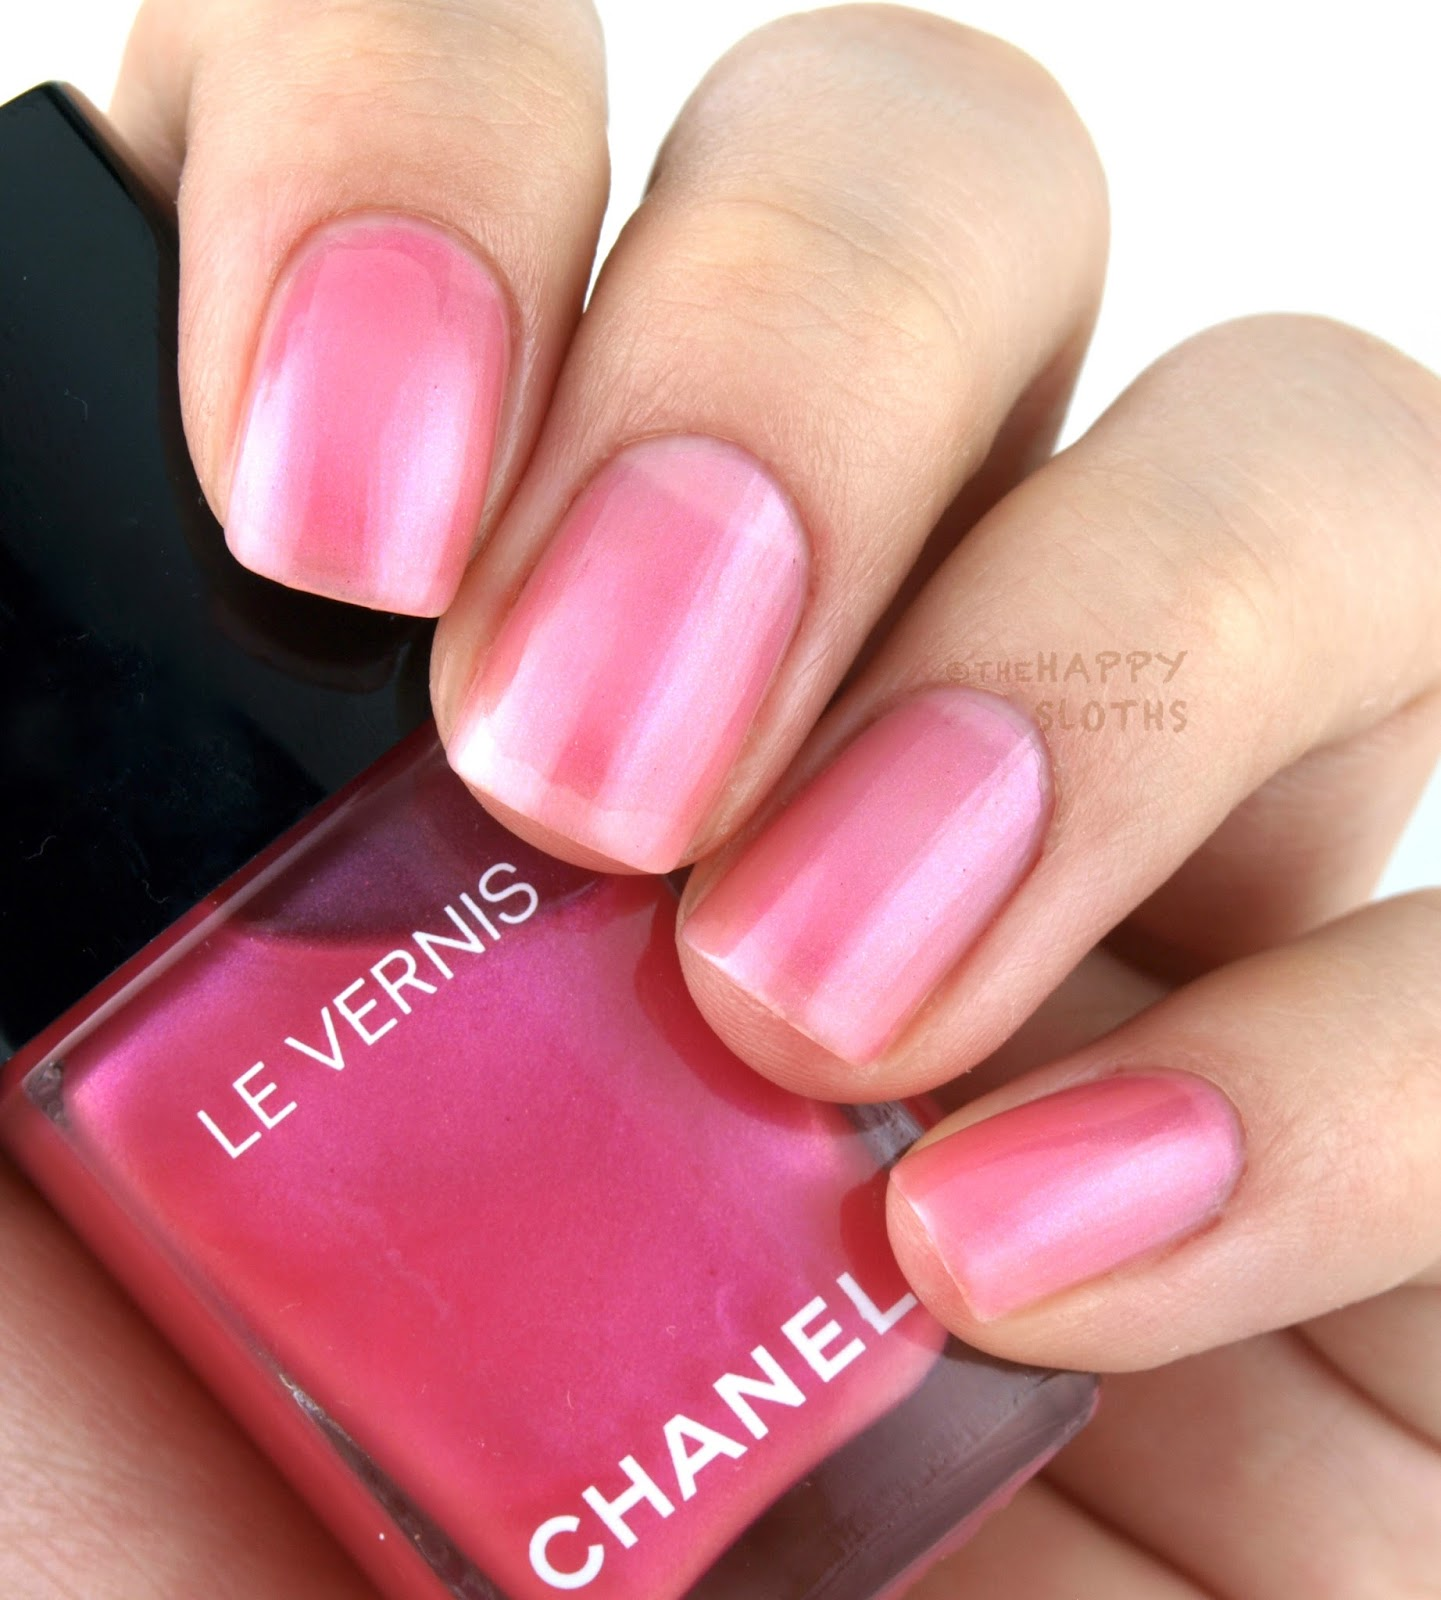 Chanel Holiday 2016 Collection Le Vernis Hyperrose Review Swatches